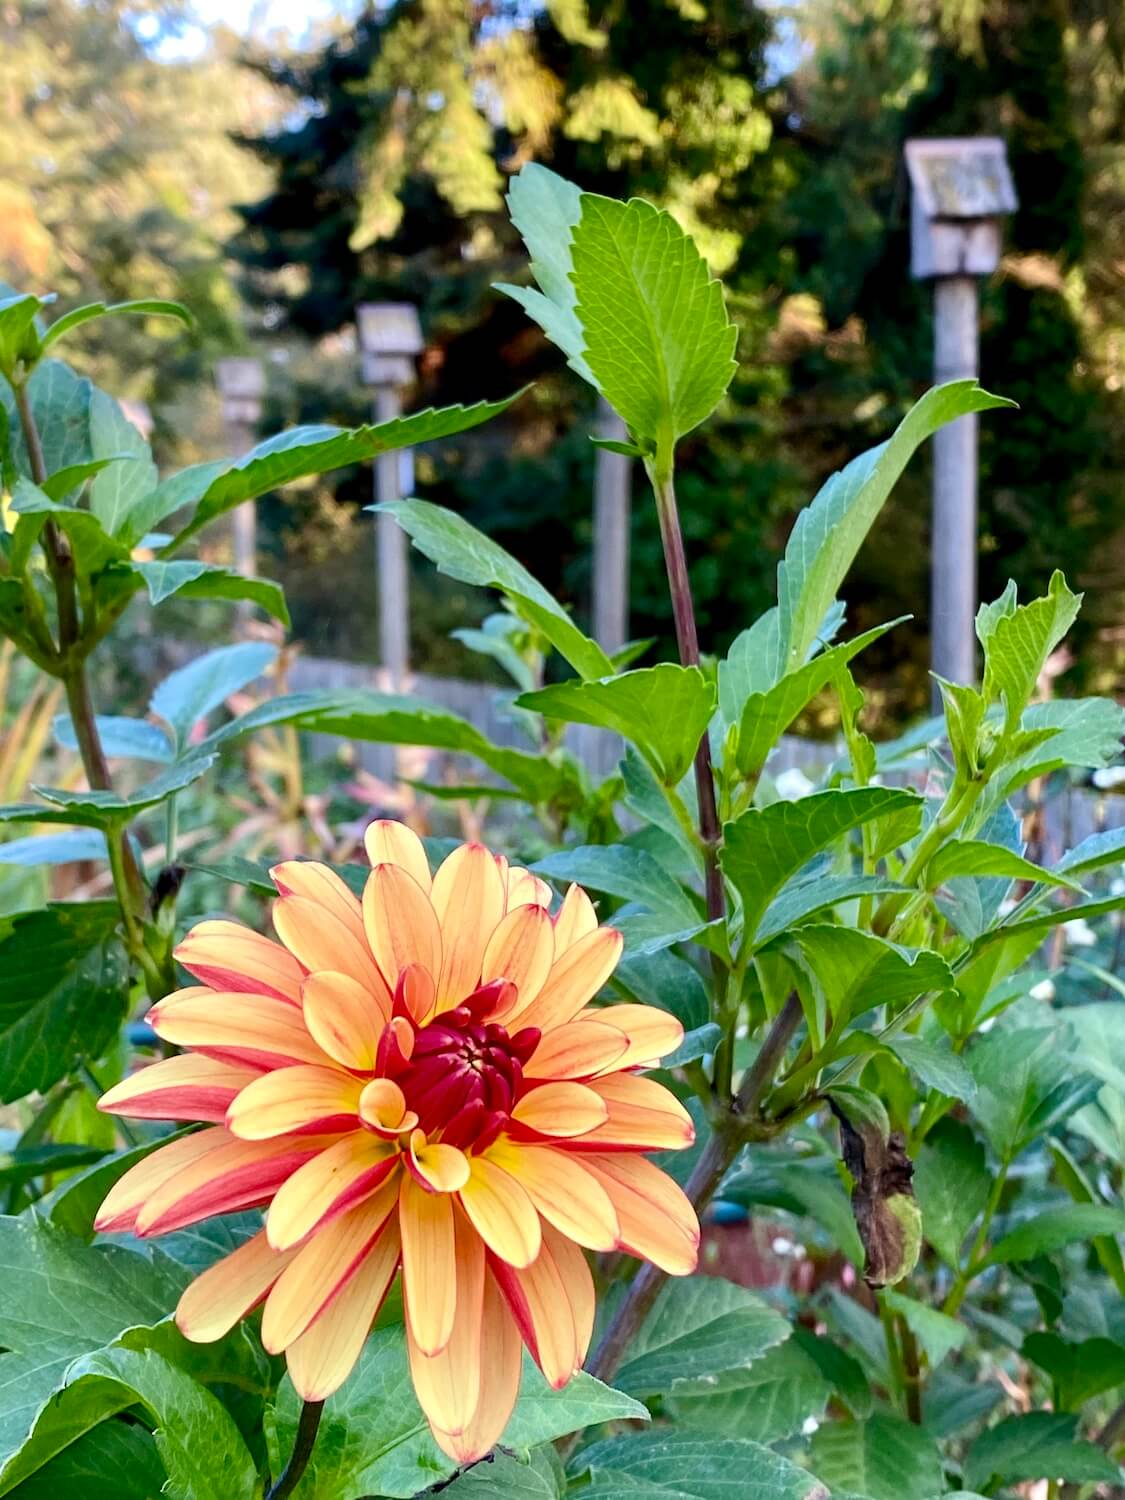 A beautiful orange dahlia pops through green foliage to show offer variegated petals. In the background are birdhouses and other trees.